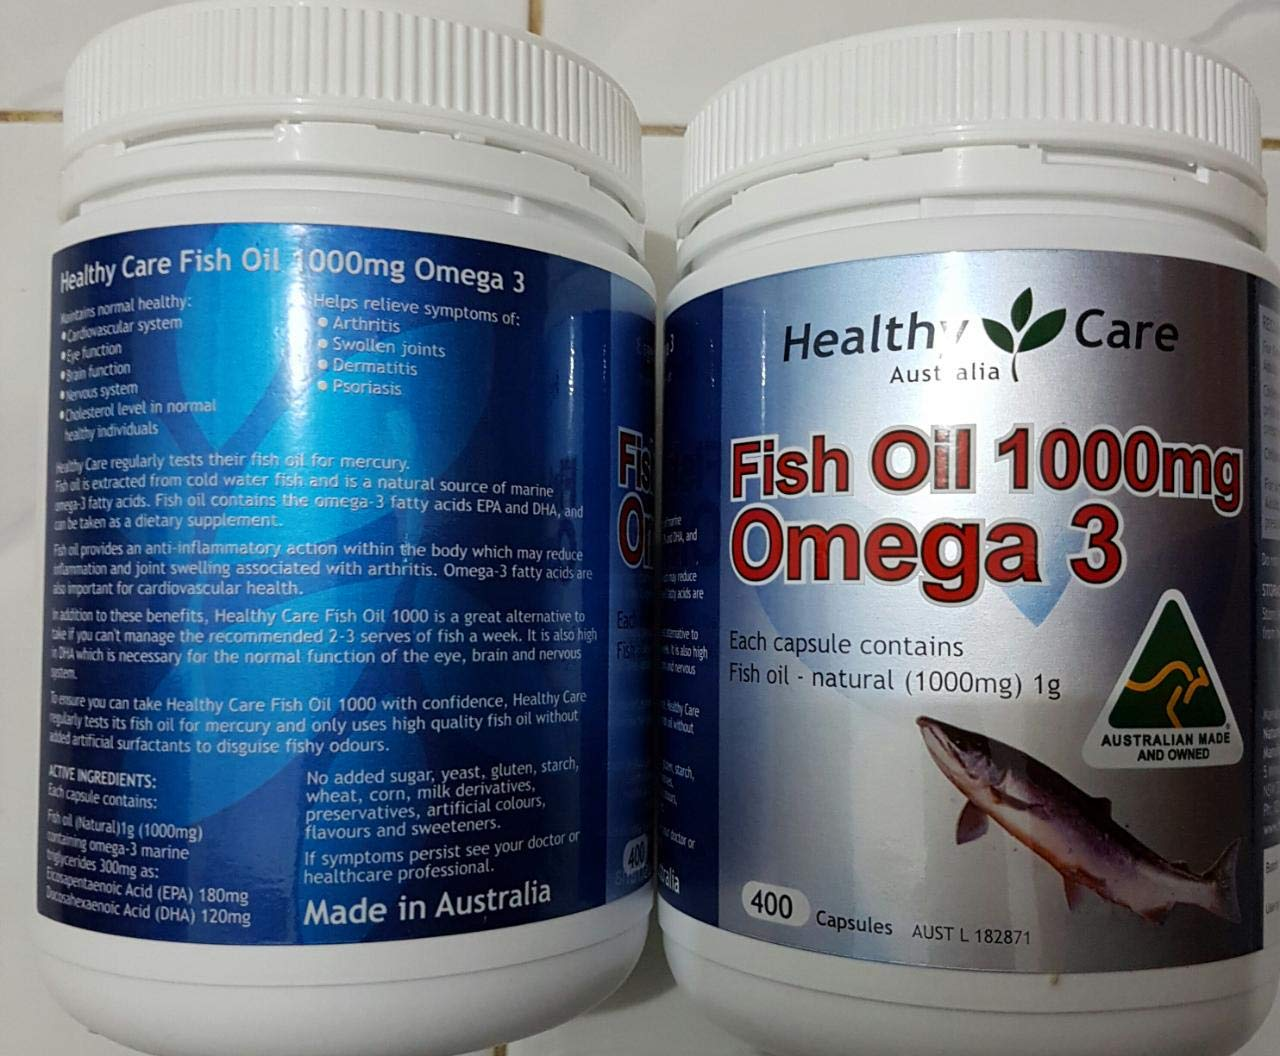 Amazon.com: Healthy Care anti-inflammatory action Omega 3 Fish Oil 1000mg 400caps contain the omega-3 fatty acids EPA DHA, Made in Australian with 1 Knot ...